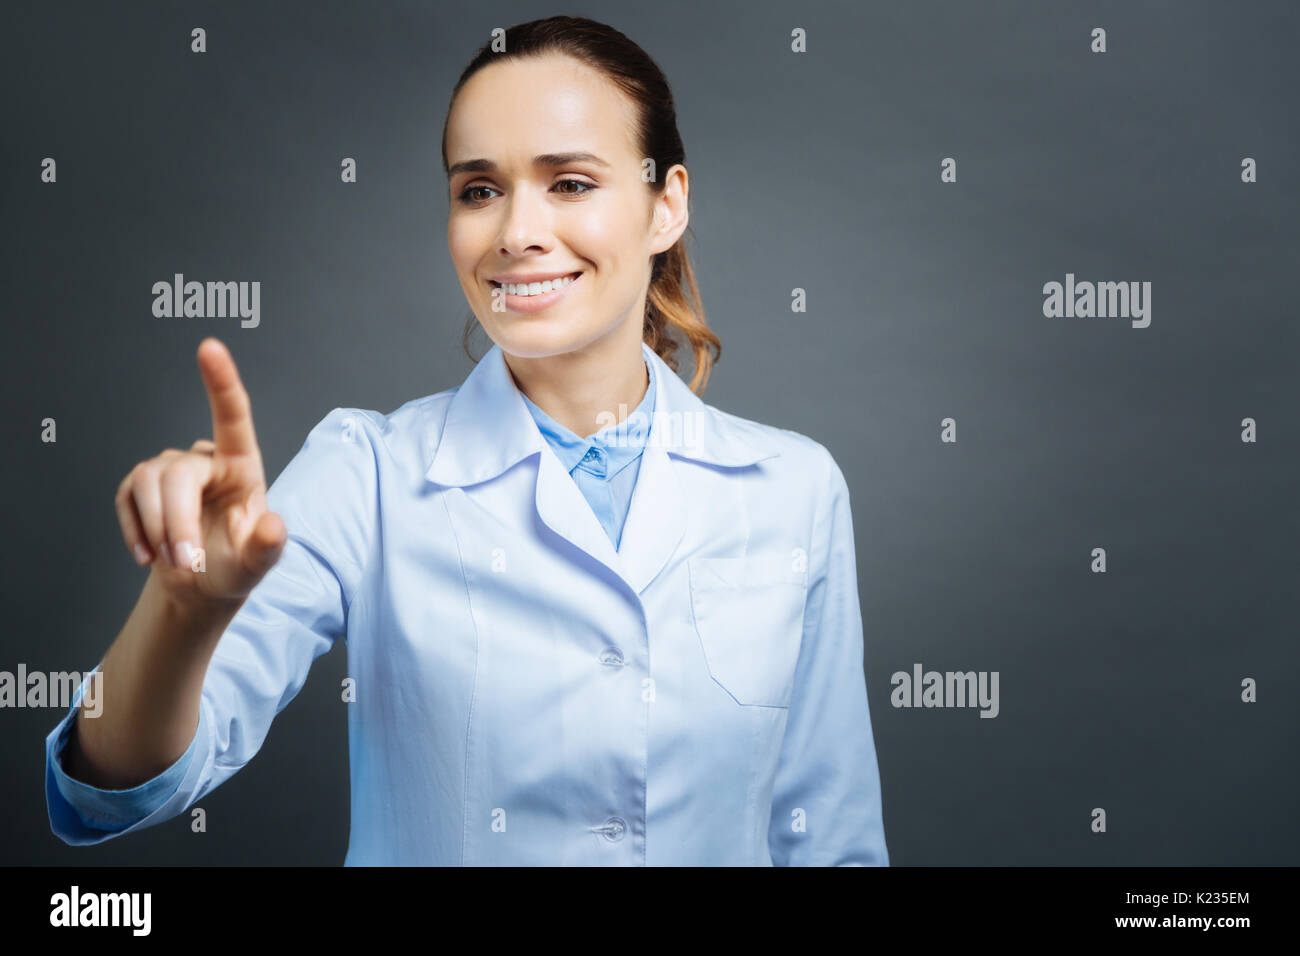 Beautiful medical professional using invisible touchscreen - Stock Image